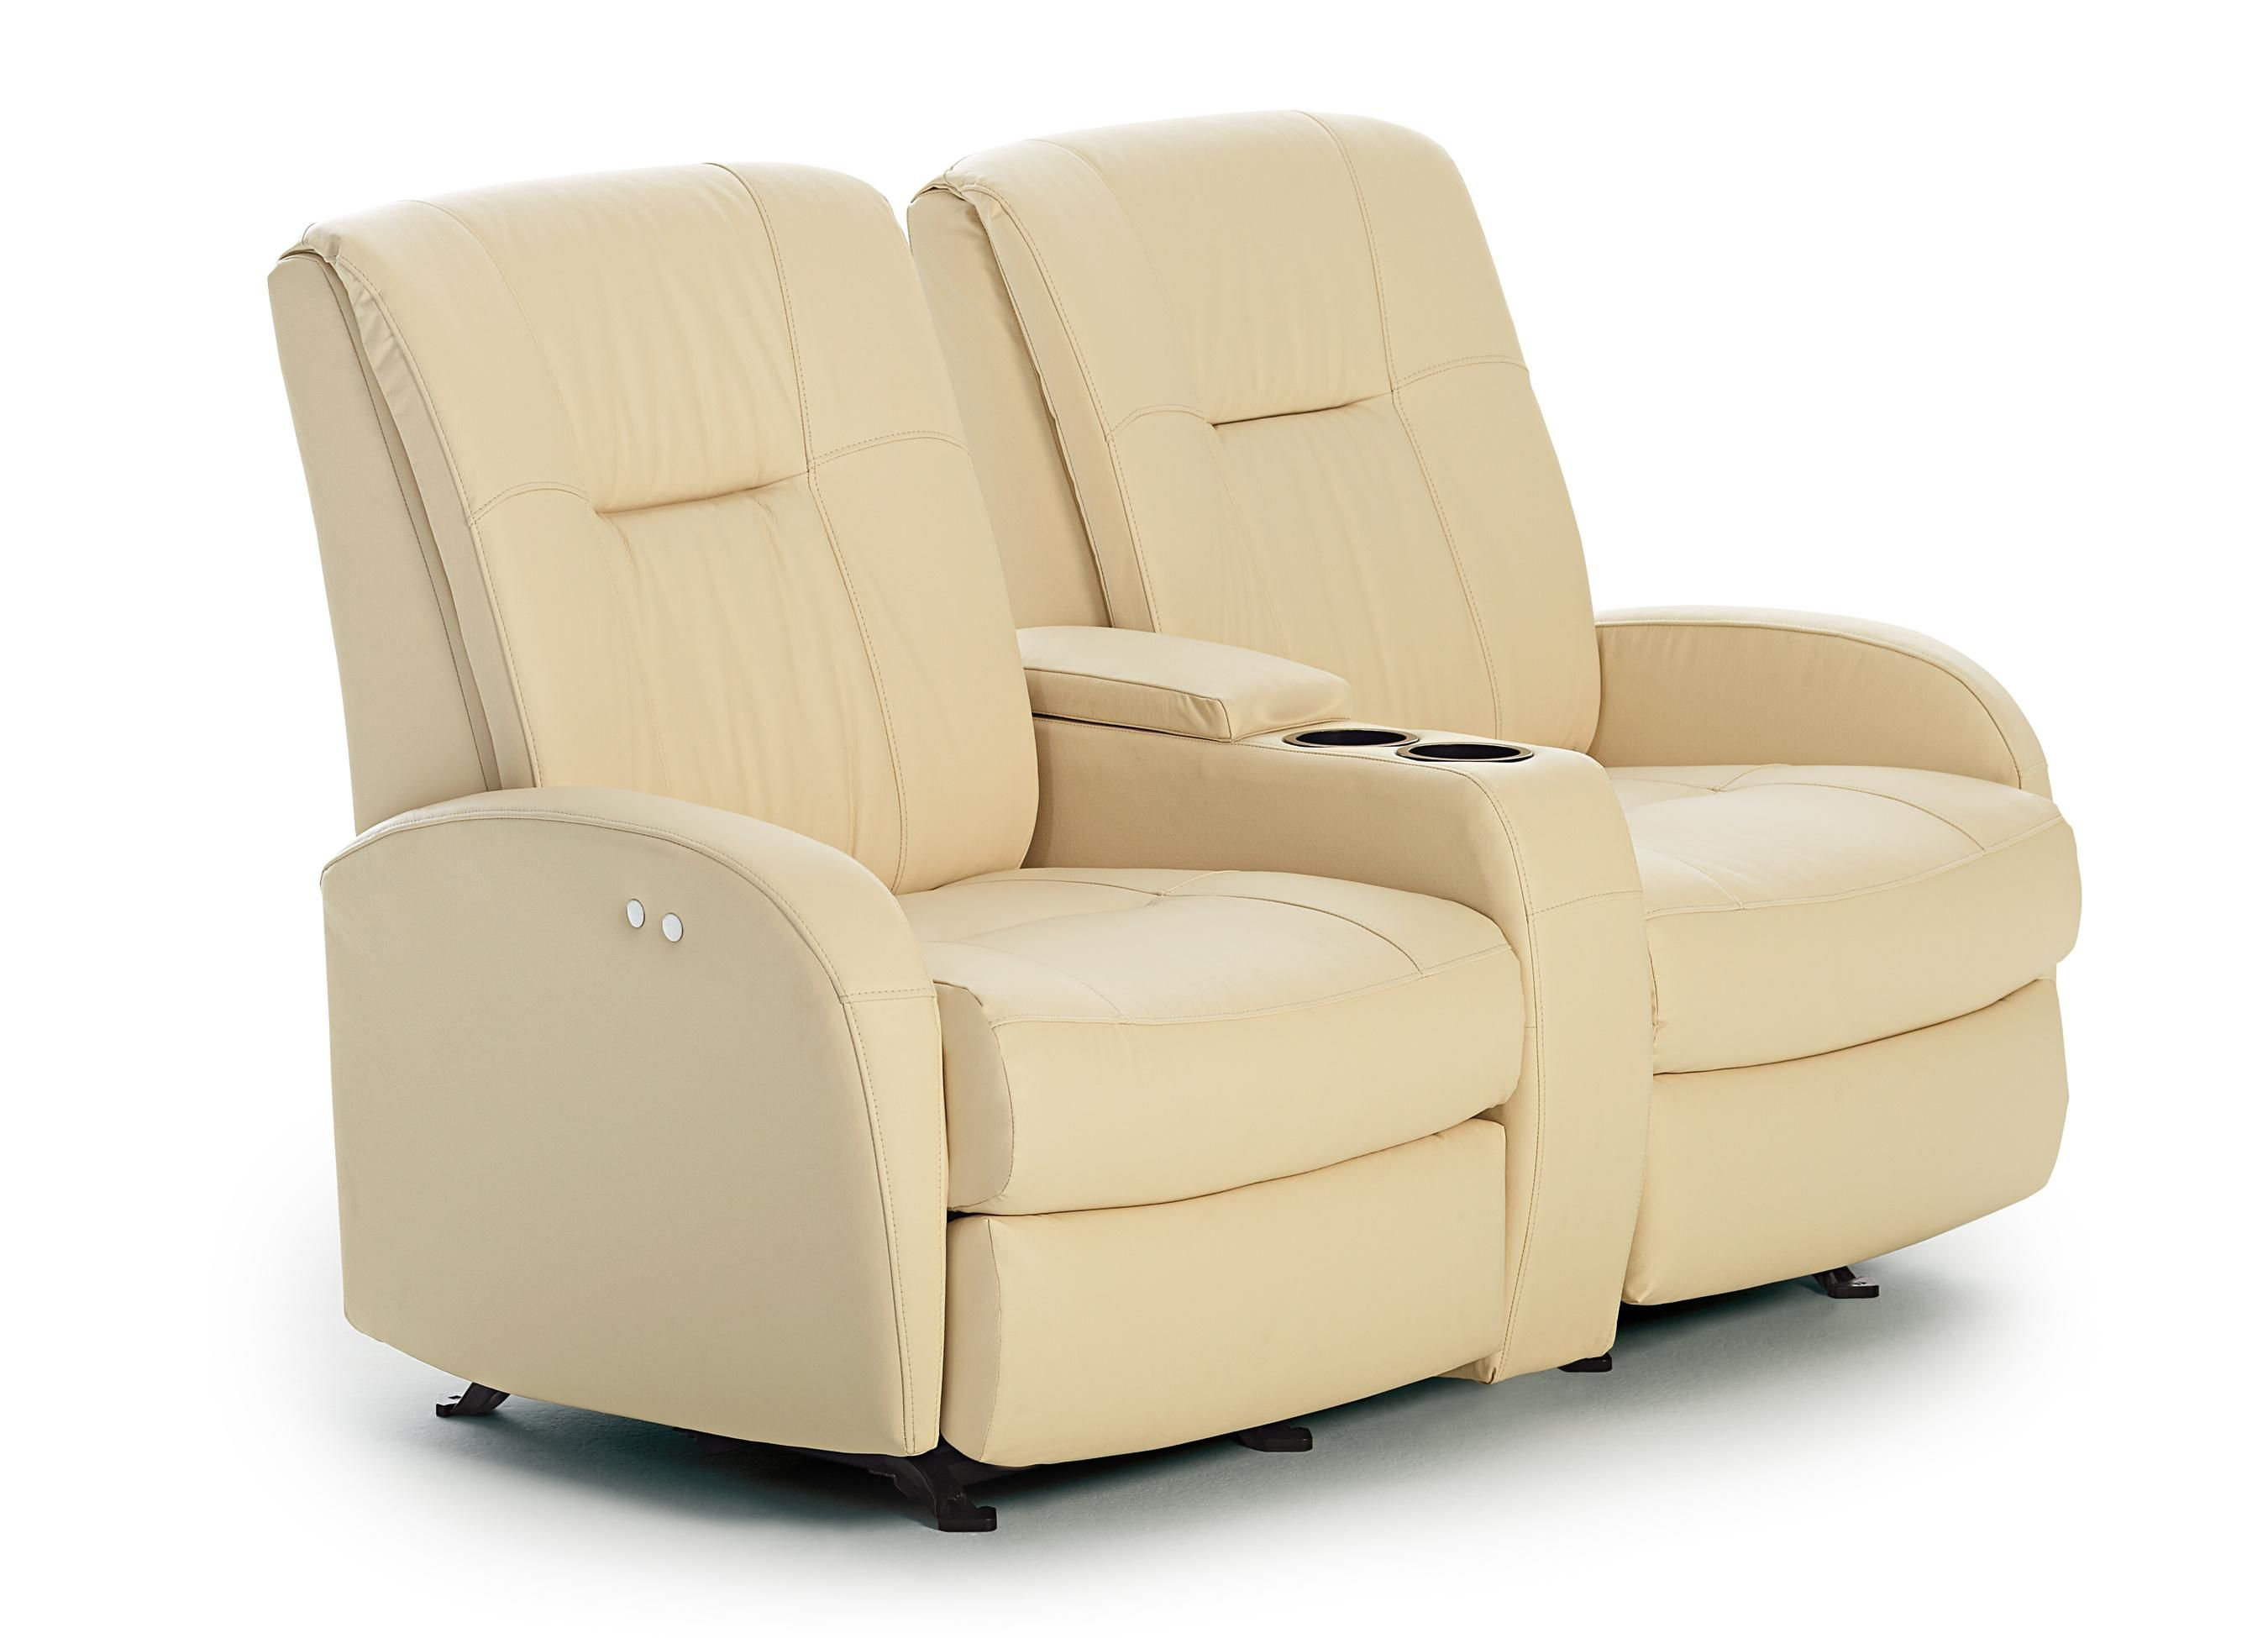 Small reclining loveseat contemporary space saver power reclining loveseat wtih drink Power loveseat recliner